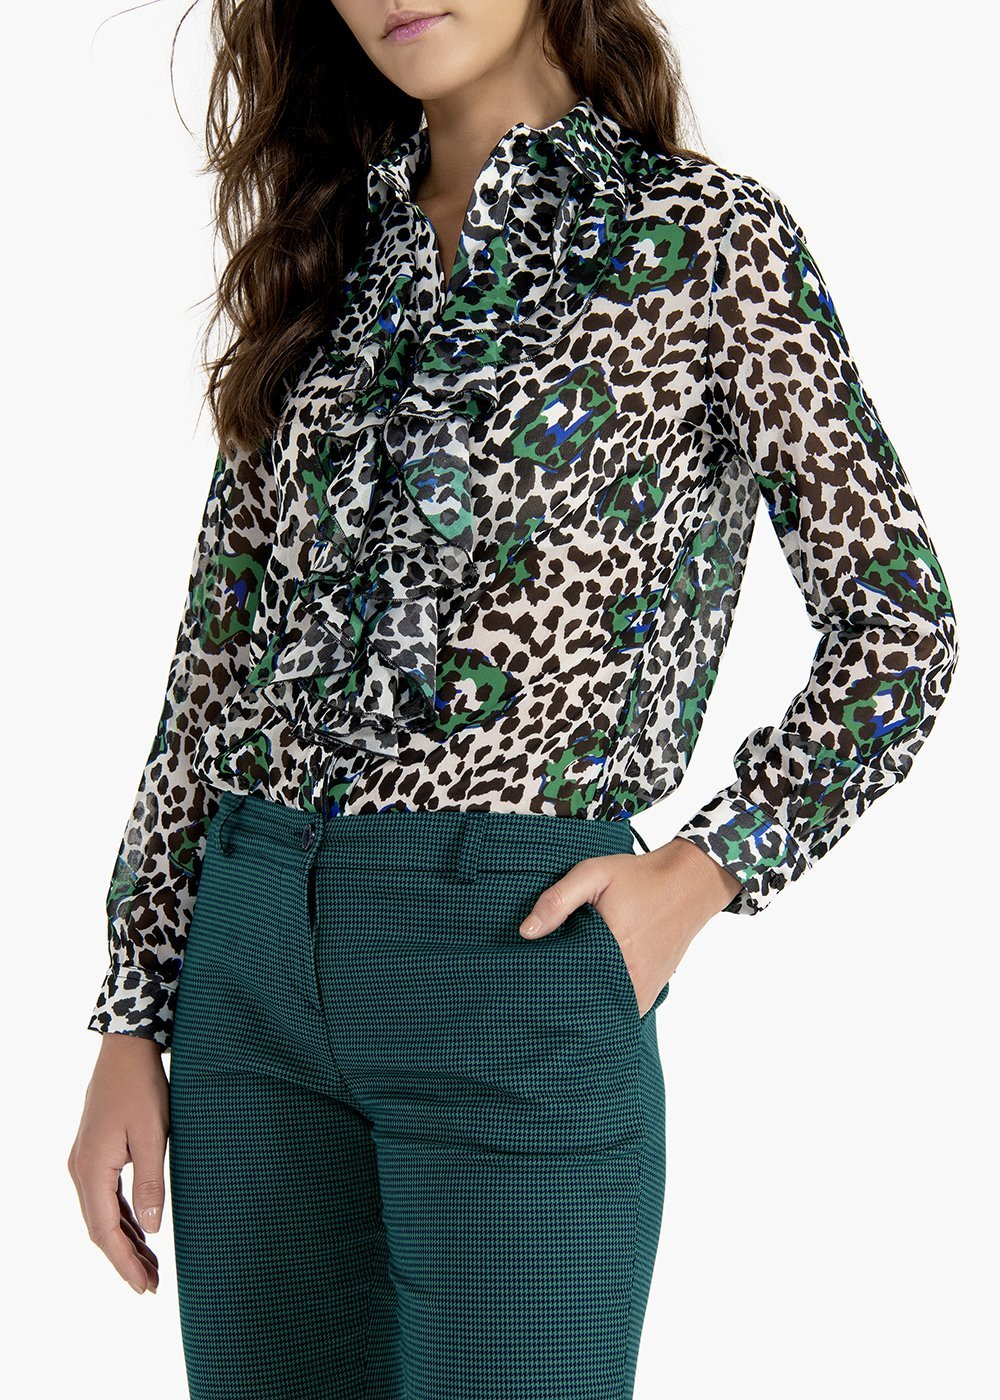 Camelia shirt with collar and ruffle at the neck - White / Black Animalier - Woman